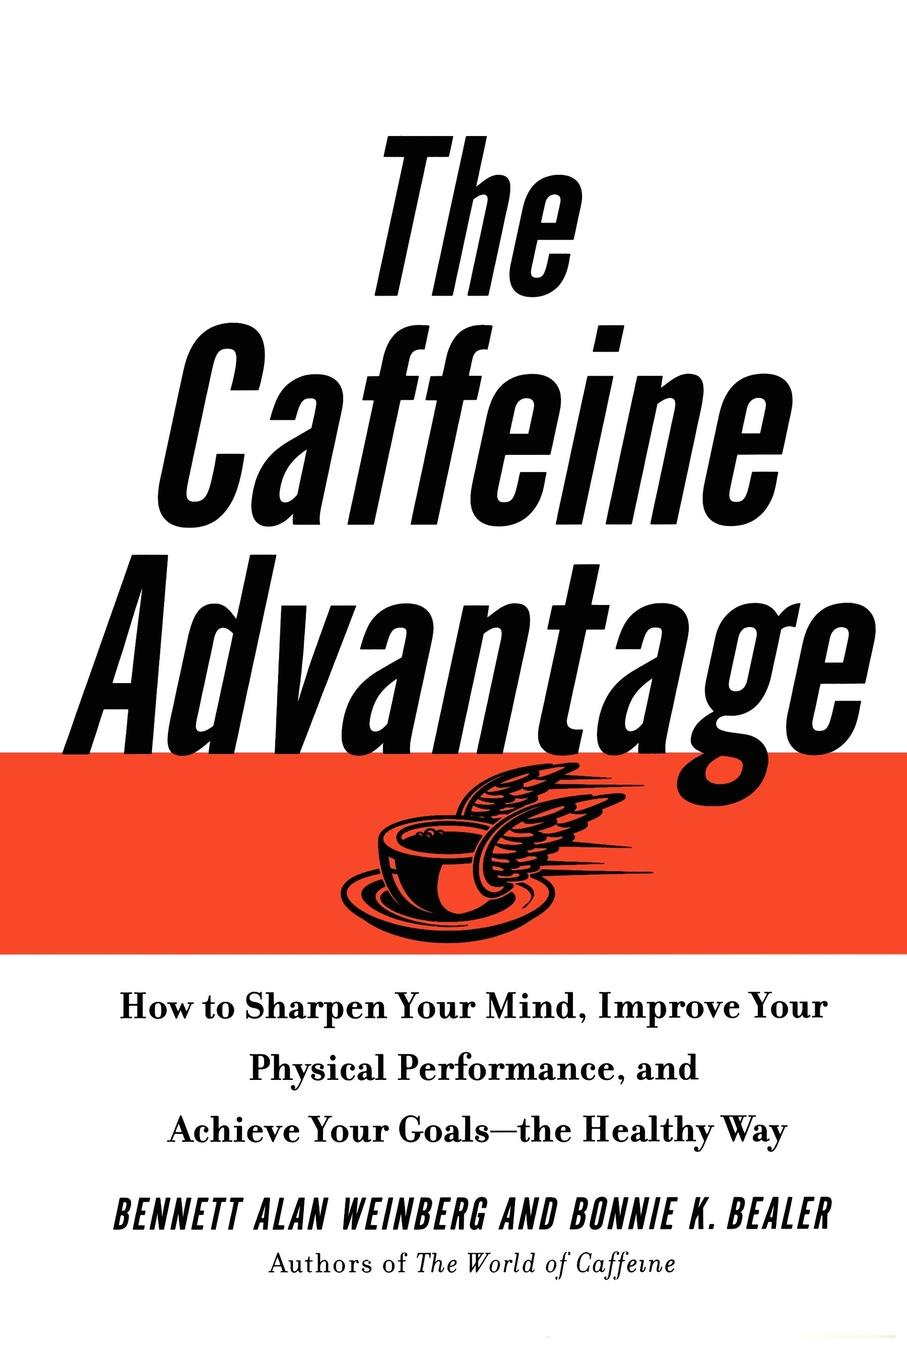 Bennett Alan Weinberg, Bonnie Bealer The Caffeine Advantage. How to Sharpen Your Mind, Improve Your Physical Performance and Schieve Your Goals how to free your mind